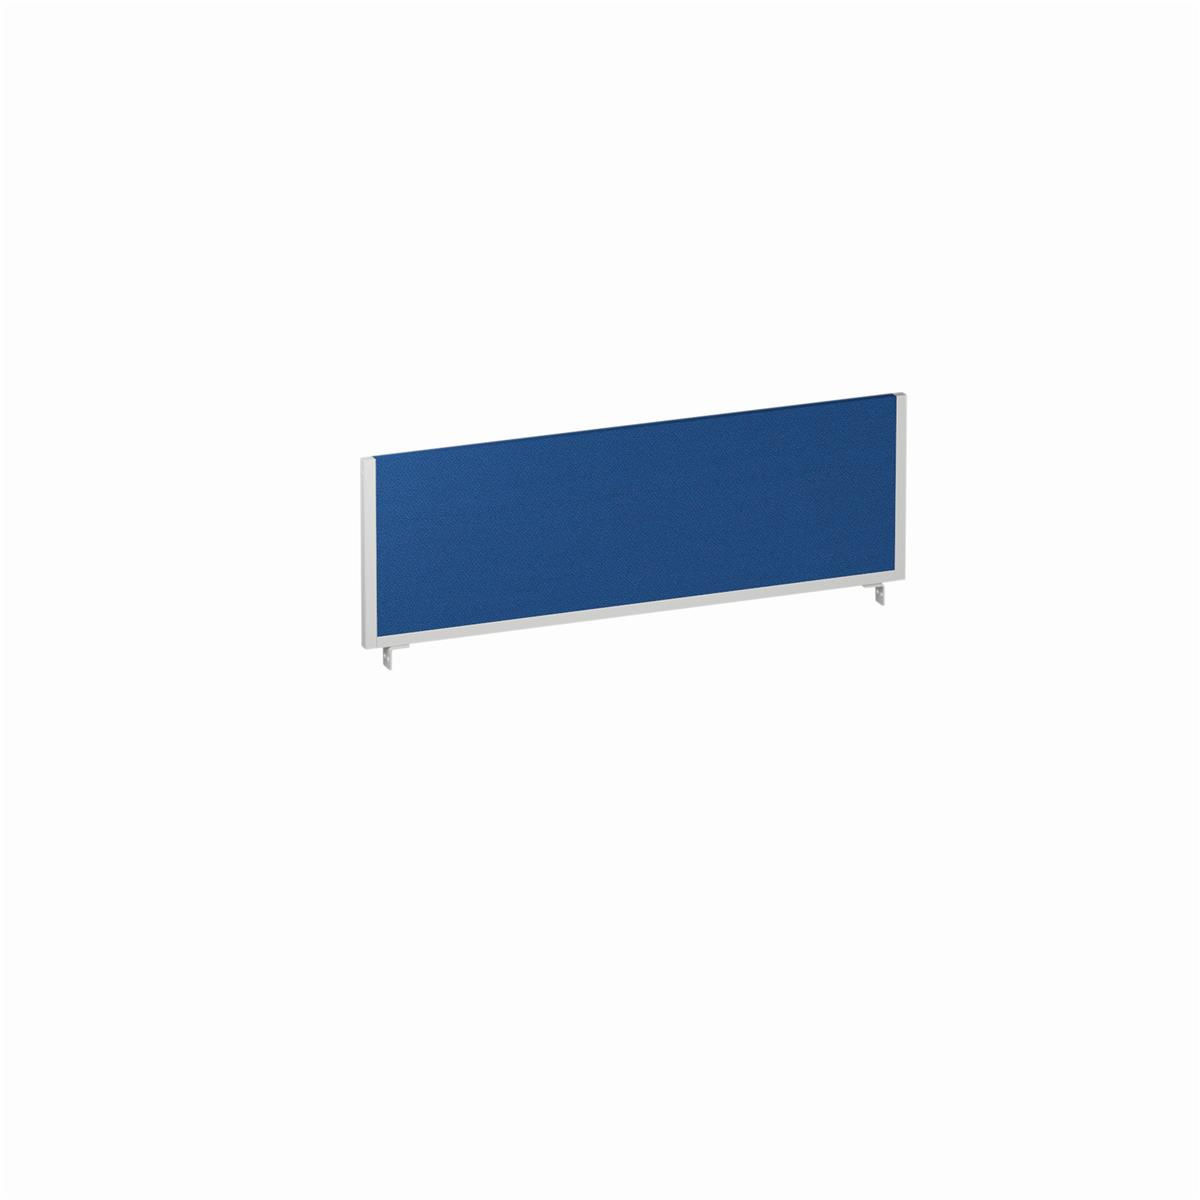 Image for Trexus Desk Screen 1200mm Blue with Silver Frame